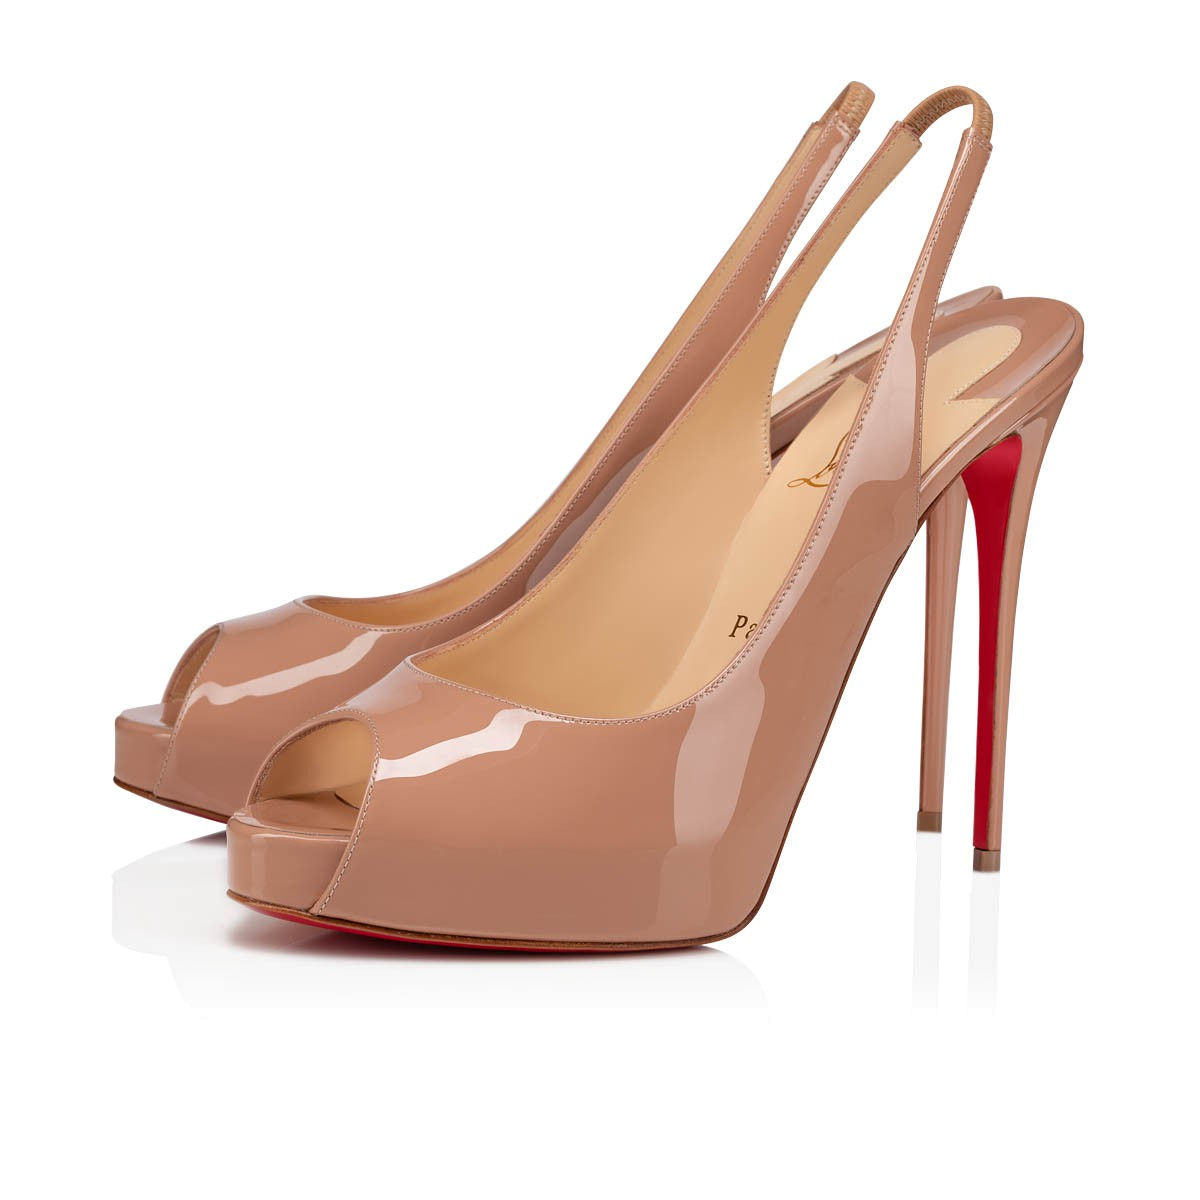 ea6f2819b2b Private Number 120 Nude Patent Leather - Women Shoes - Christian Louboutin